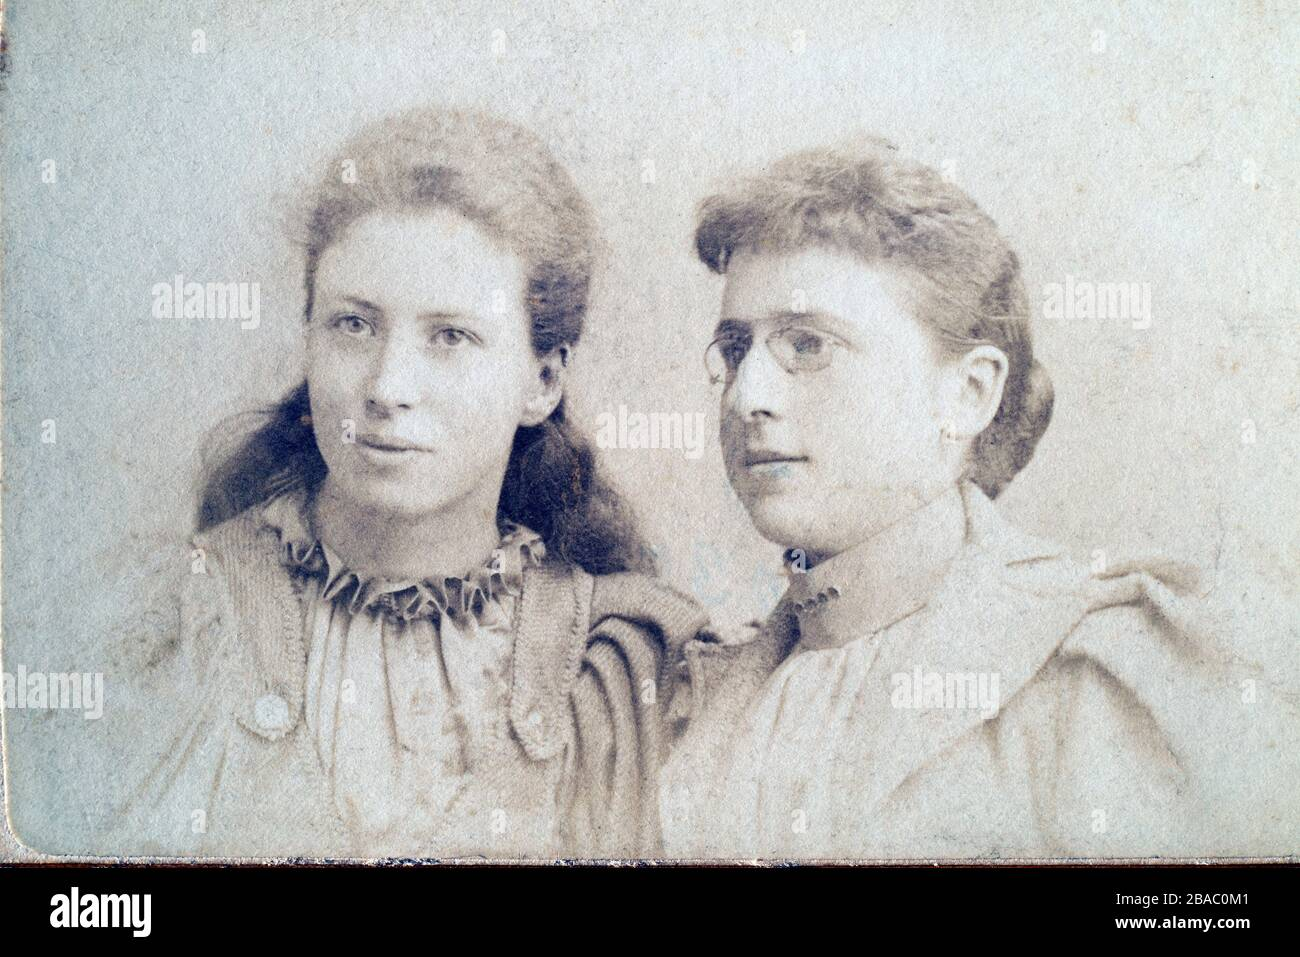 Archive Edwardian or late Victorian portrait of two women, possibly sisters. CDV 1900-1910. Stock Photo